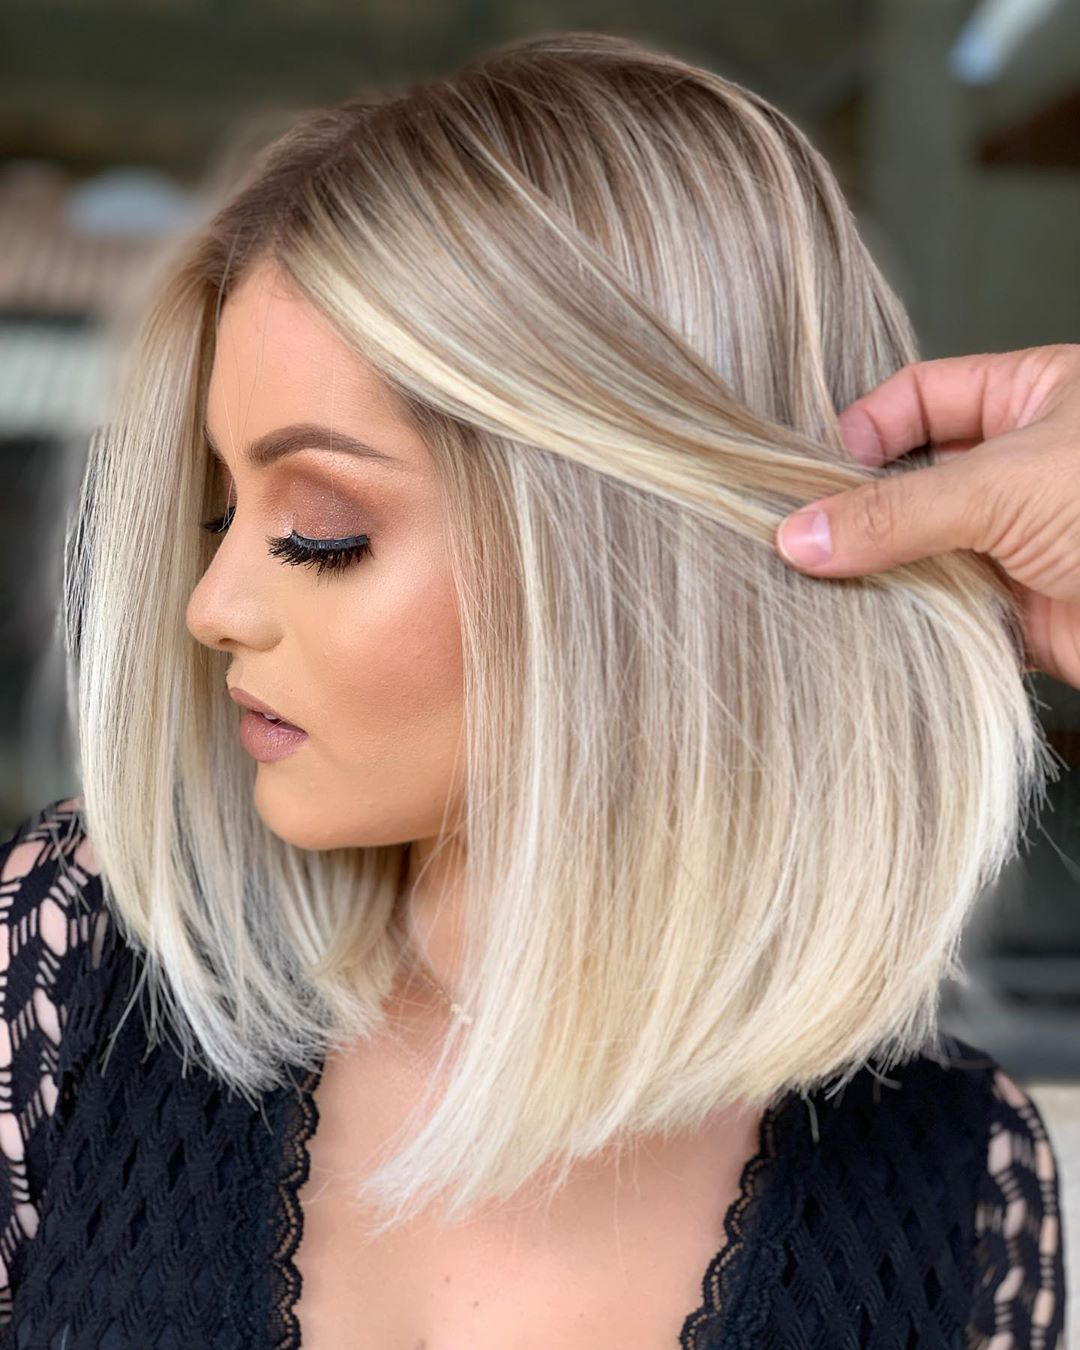 Do You Know The Best Long Bob Hairstyles Thin Fine Hair In 2020 Long Bob Hairstyles Long Bob Hairstyles Thin Bob Hairstyles